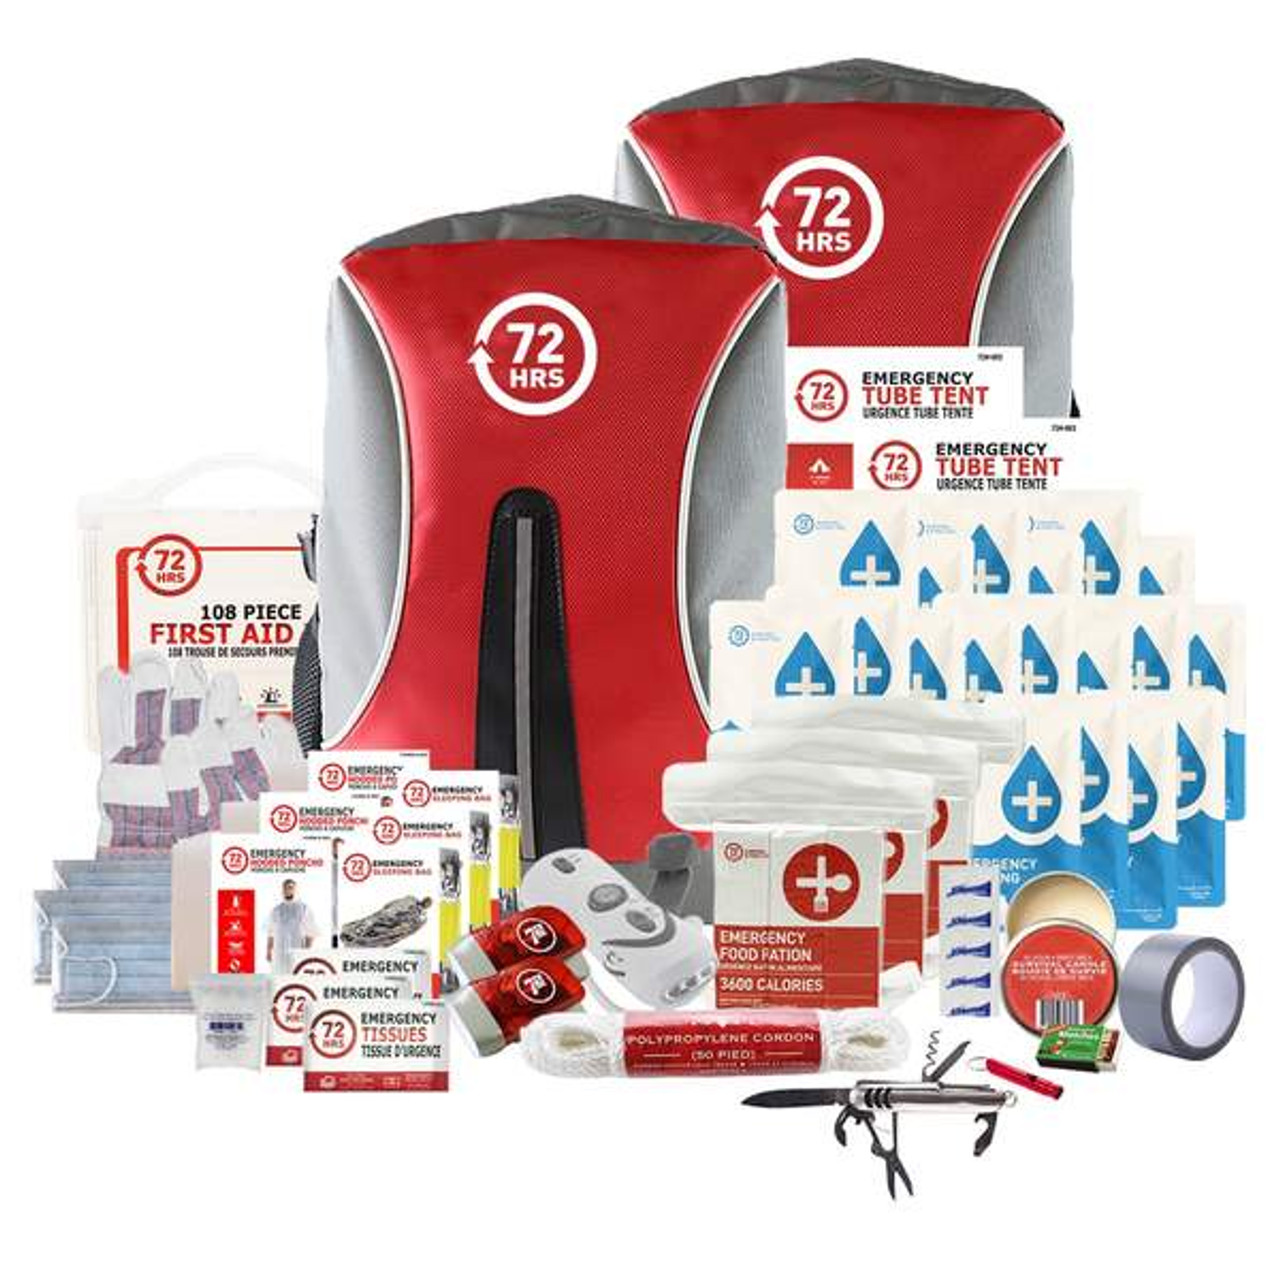 3 Person 72HRS Deluxe Backpack - Emergency Survival Kit